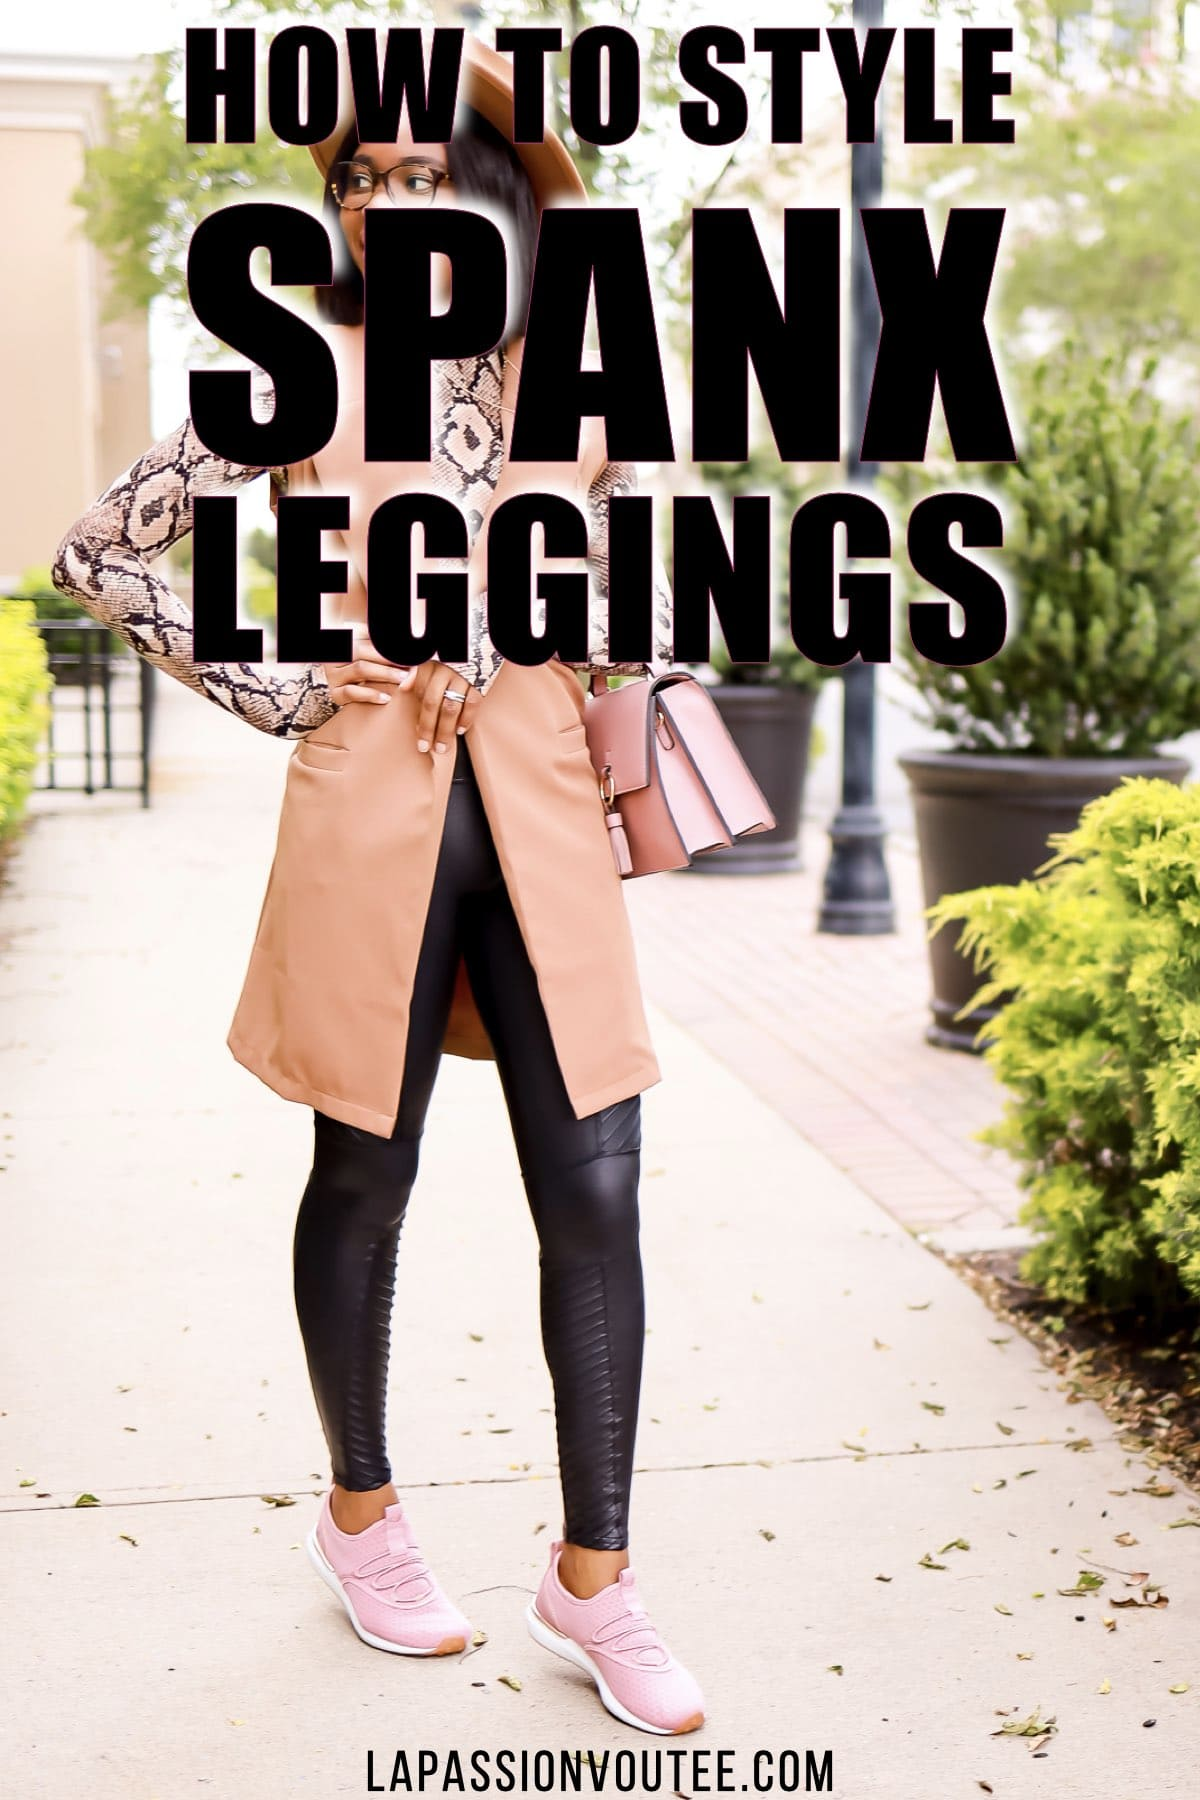 How to Style Spanx Faux Leather Leggings